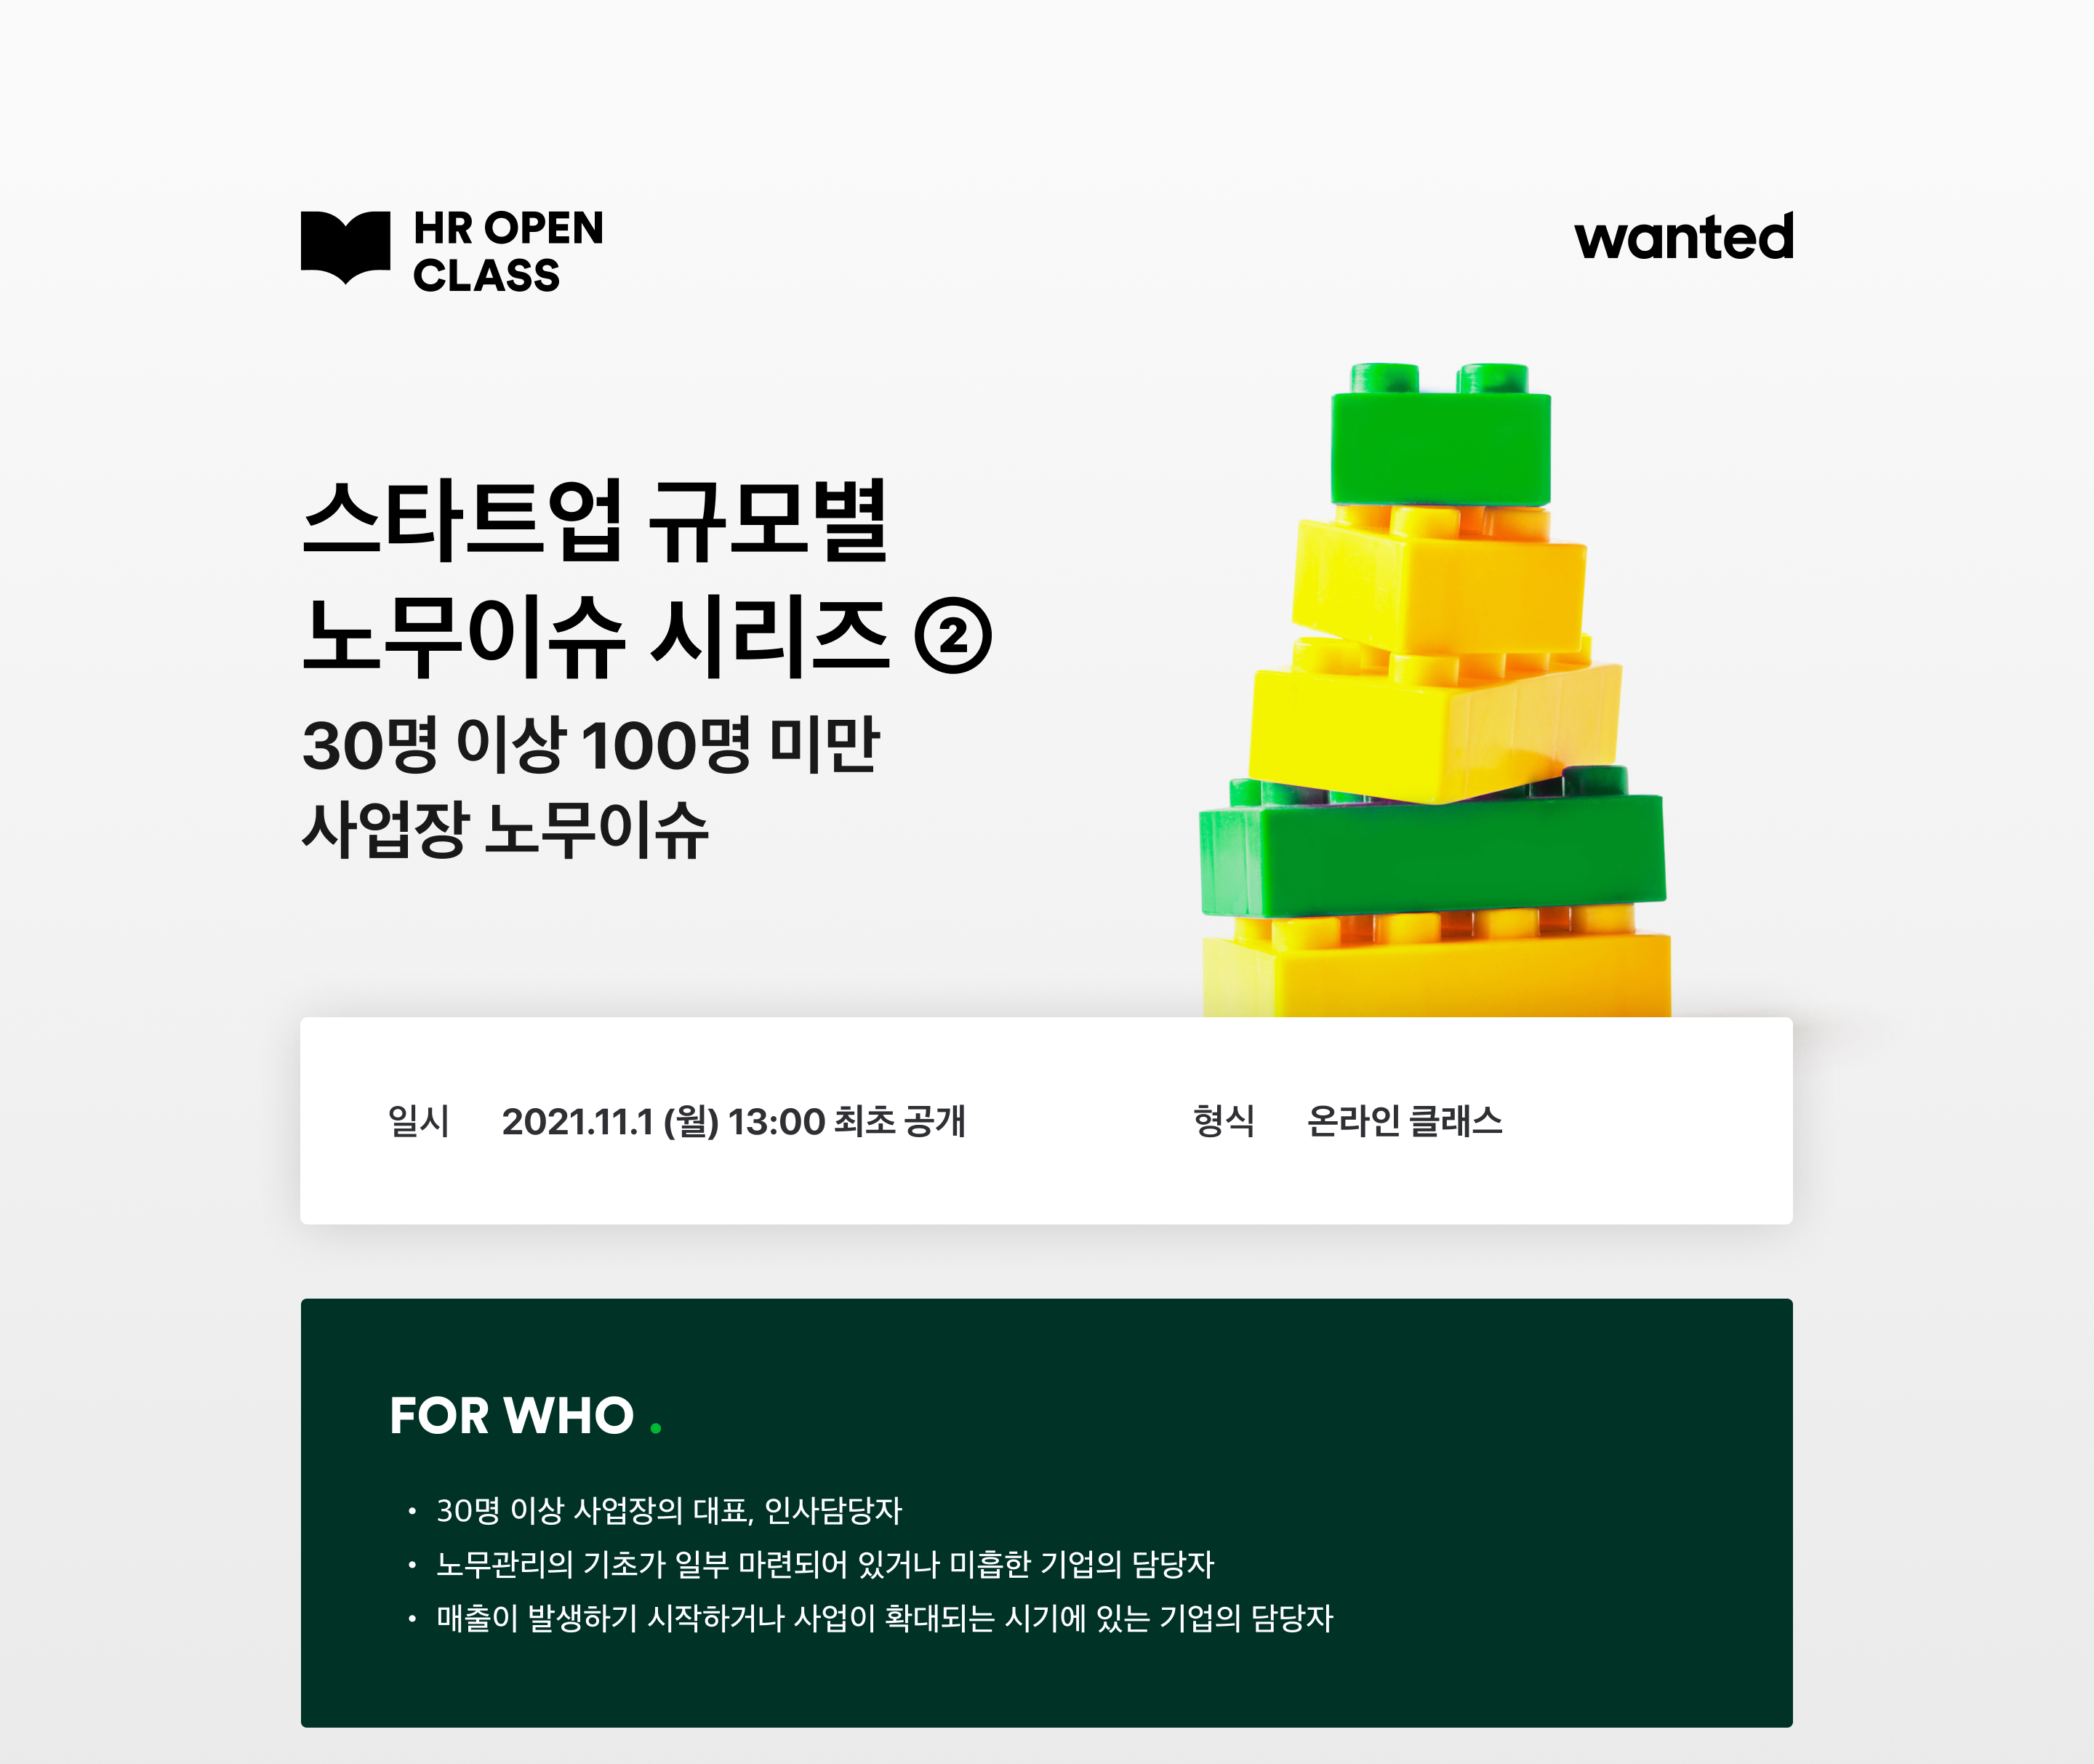 https://static.wanted.co.kr/images/events/1523/52f69174.jpg